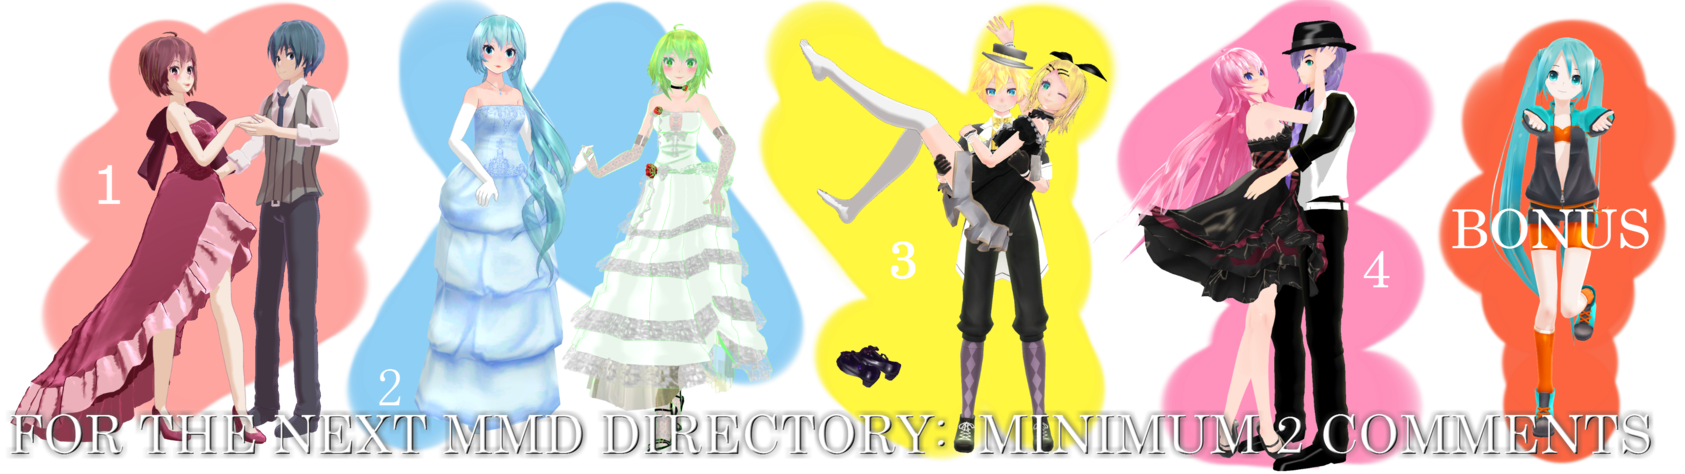 Friendly clipart polite person. Mmd dl directory pose